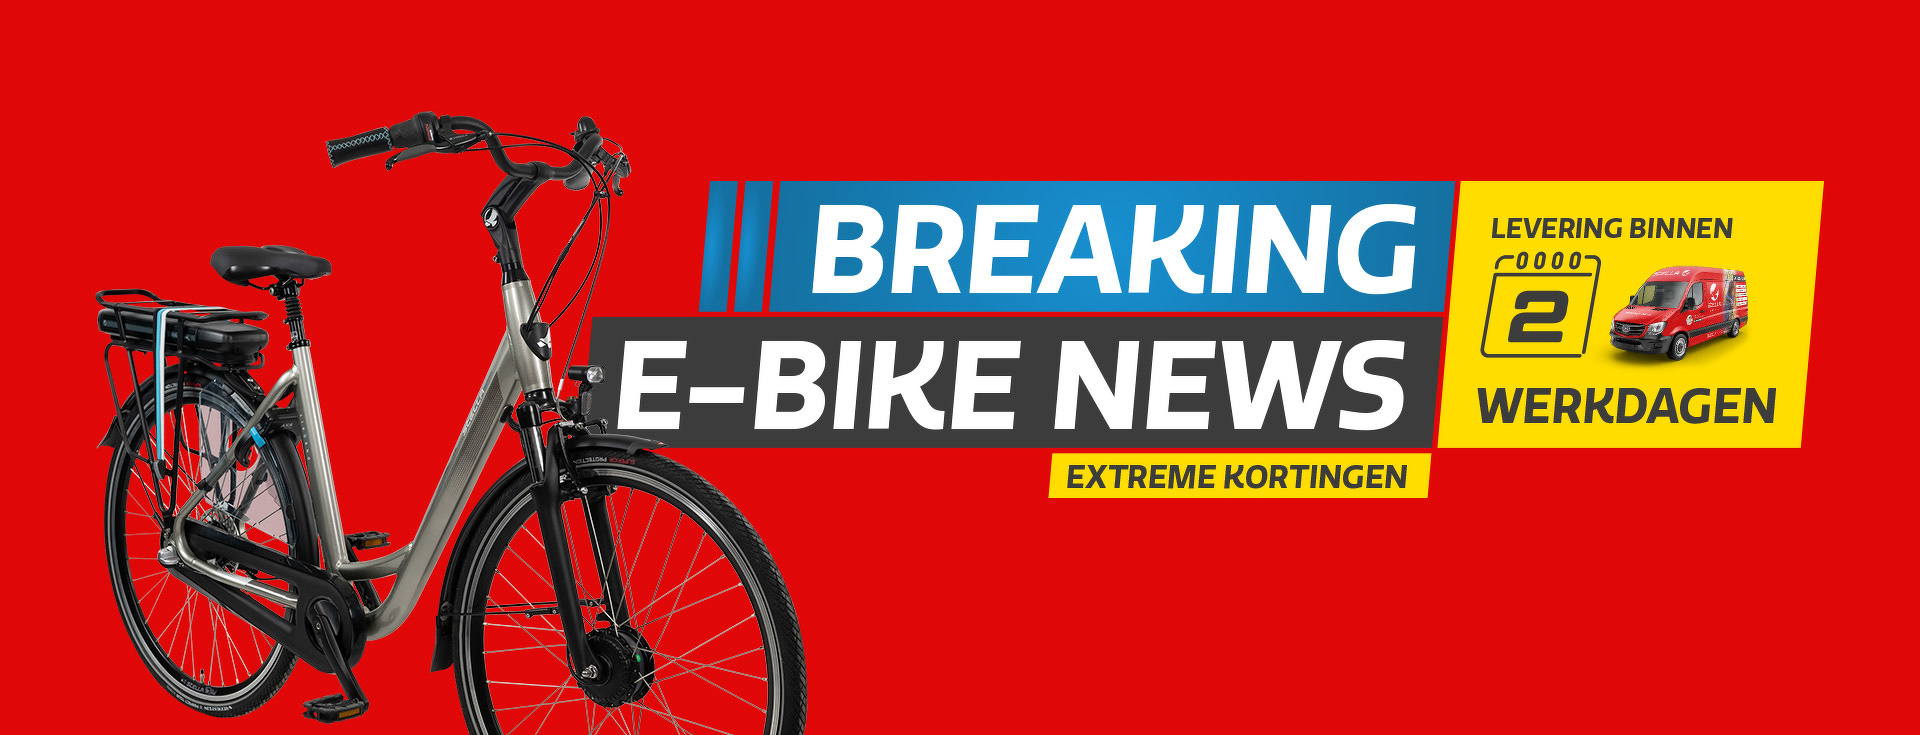 Breaking E-bike News